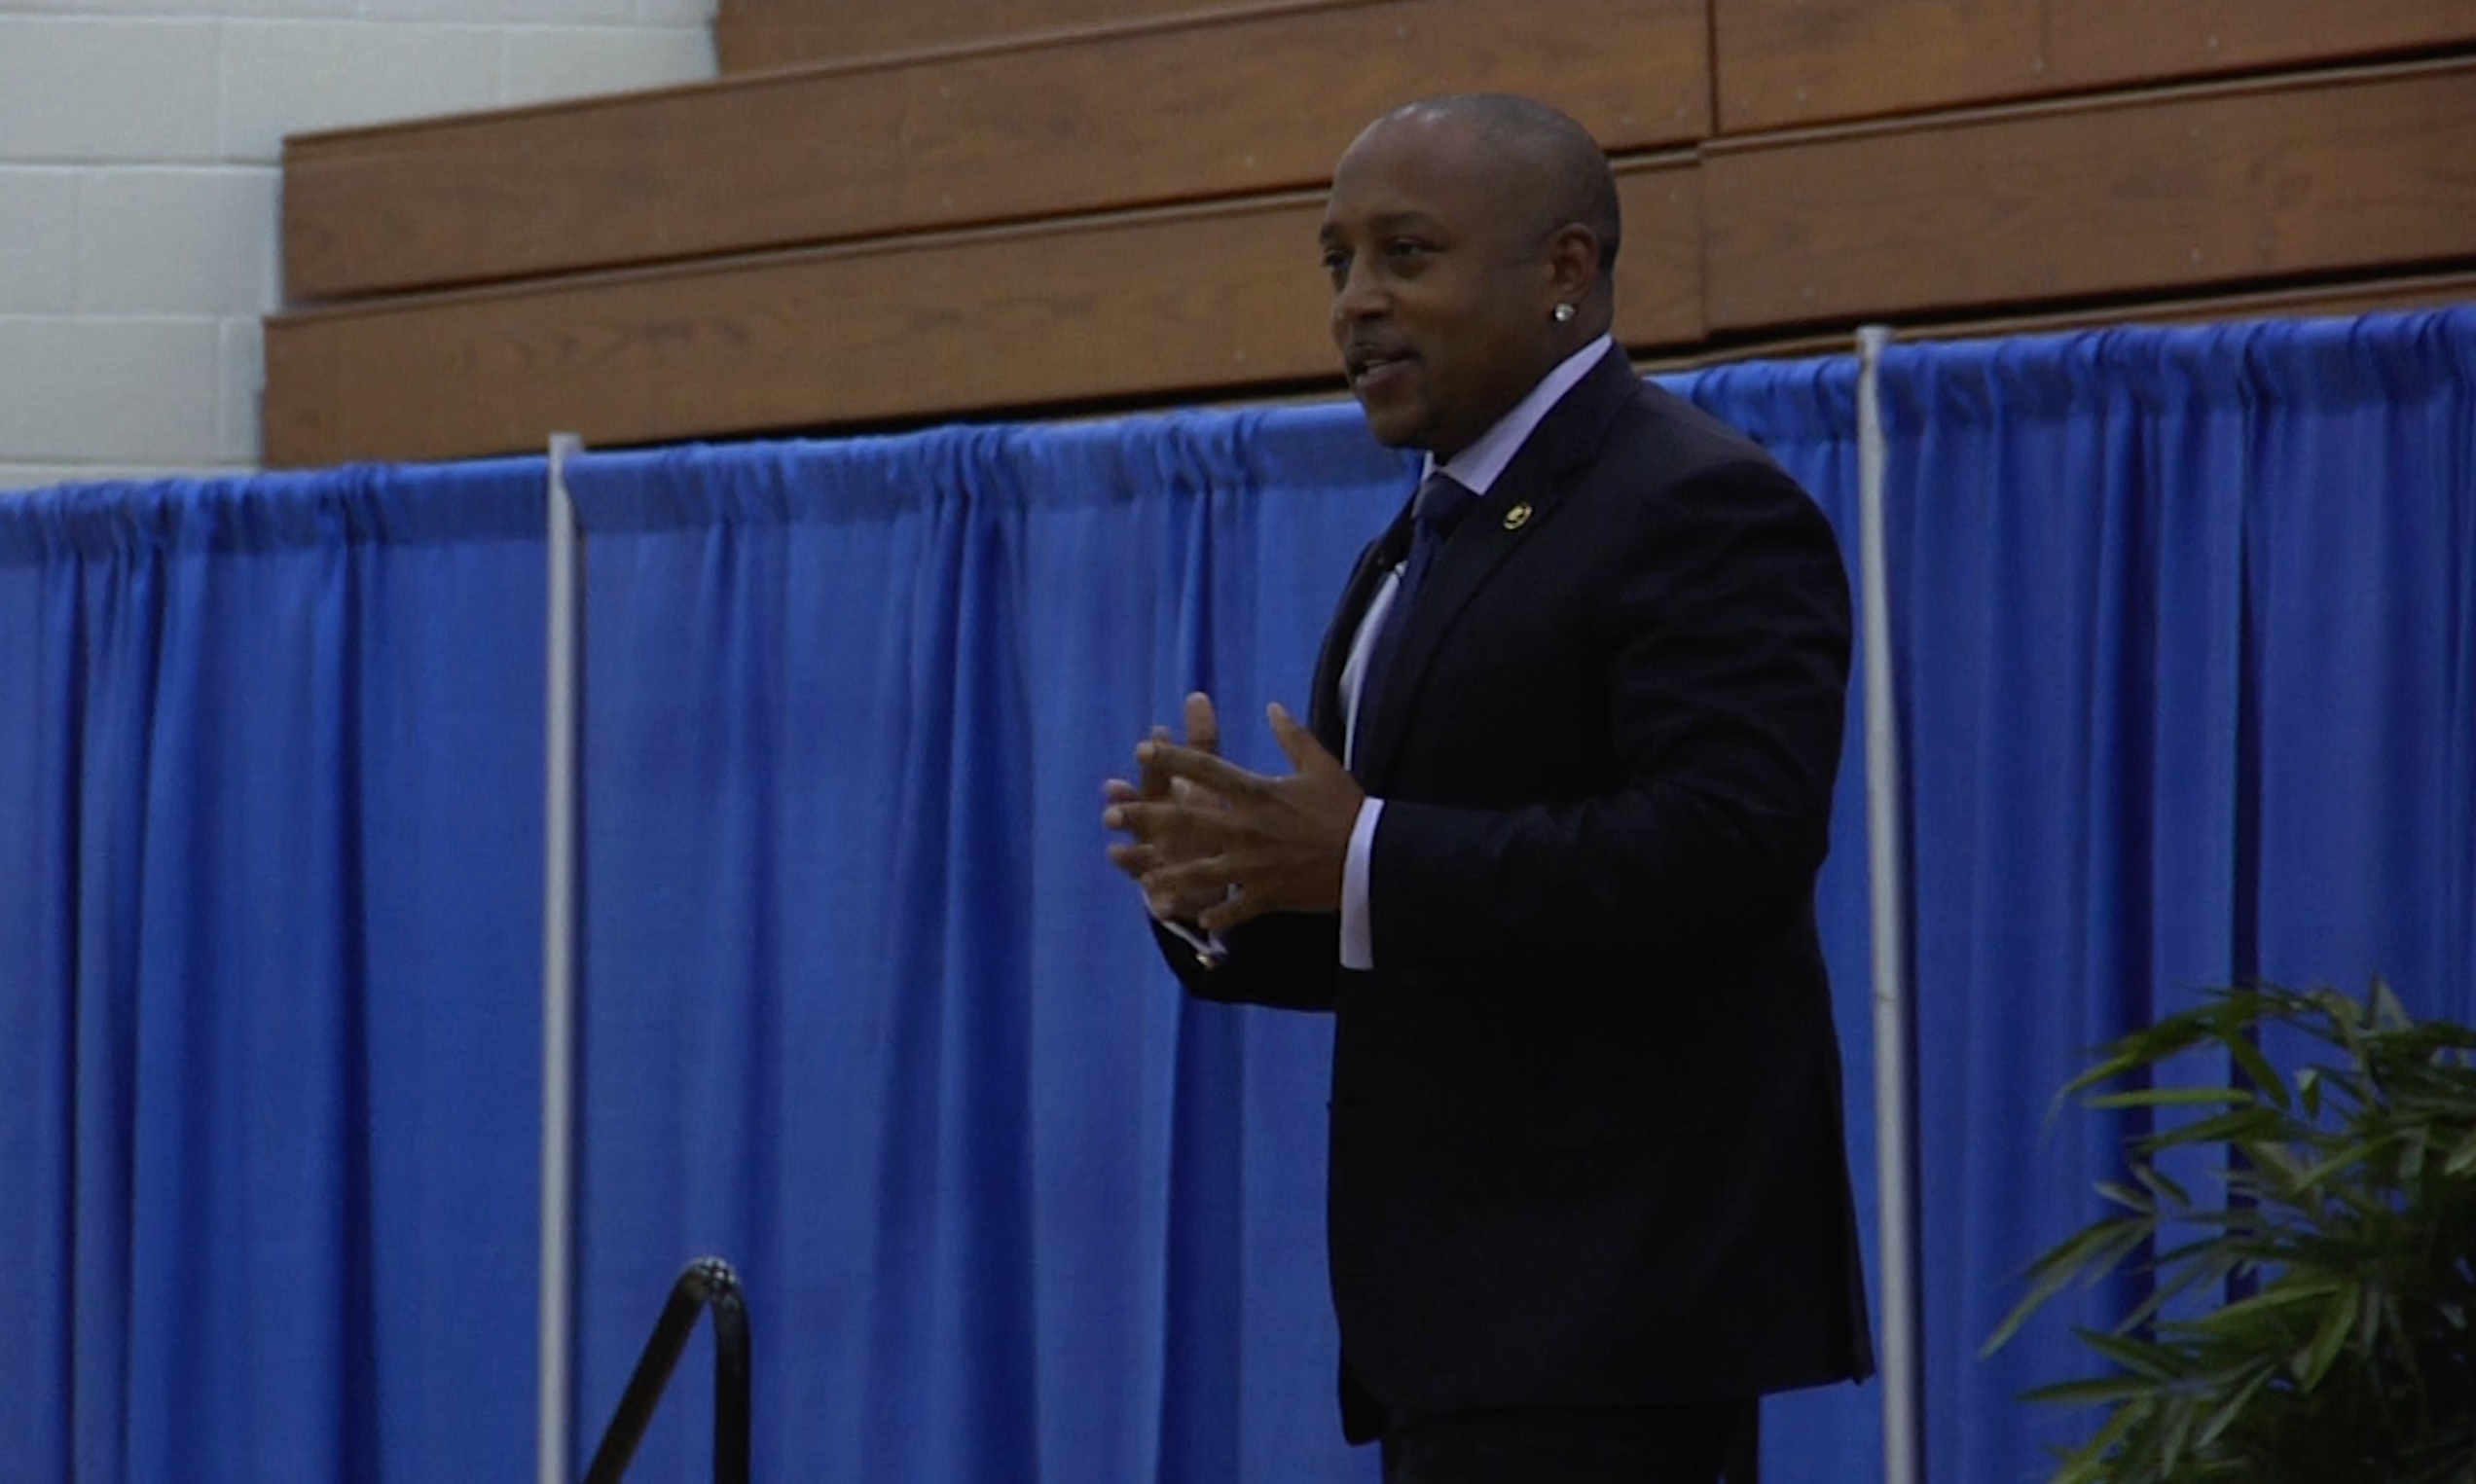 Shark Tank entrepreneur shares his business philosophy with Quinnipiac students